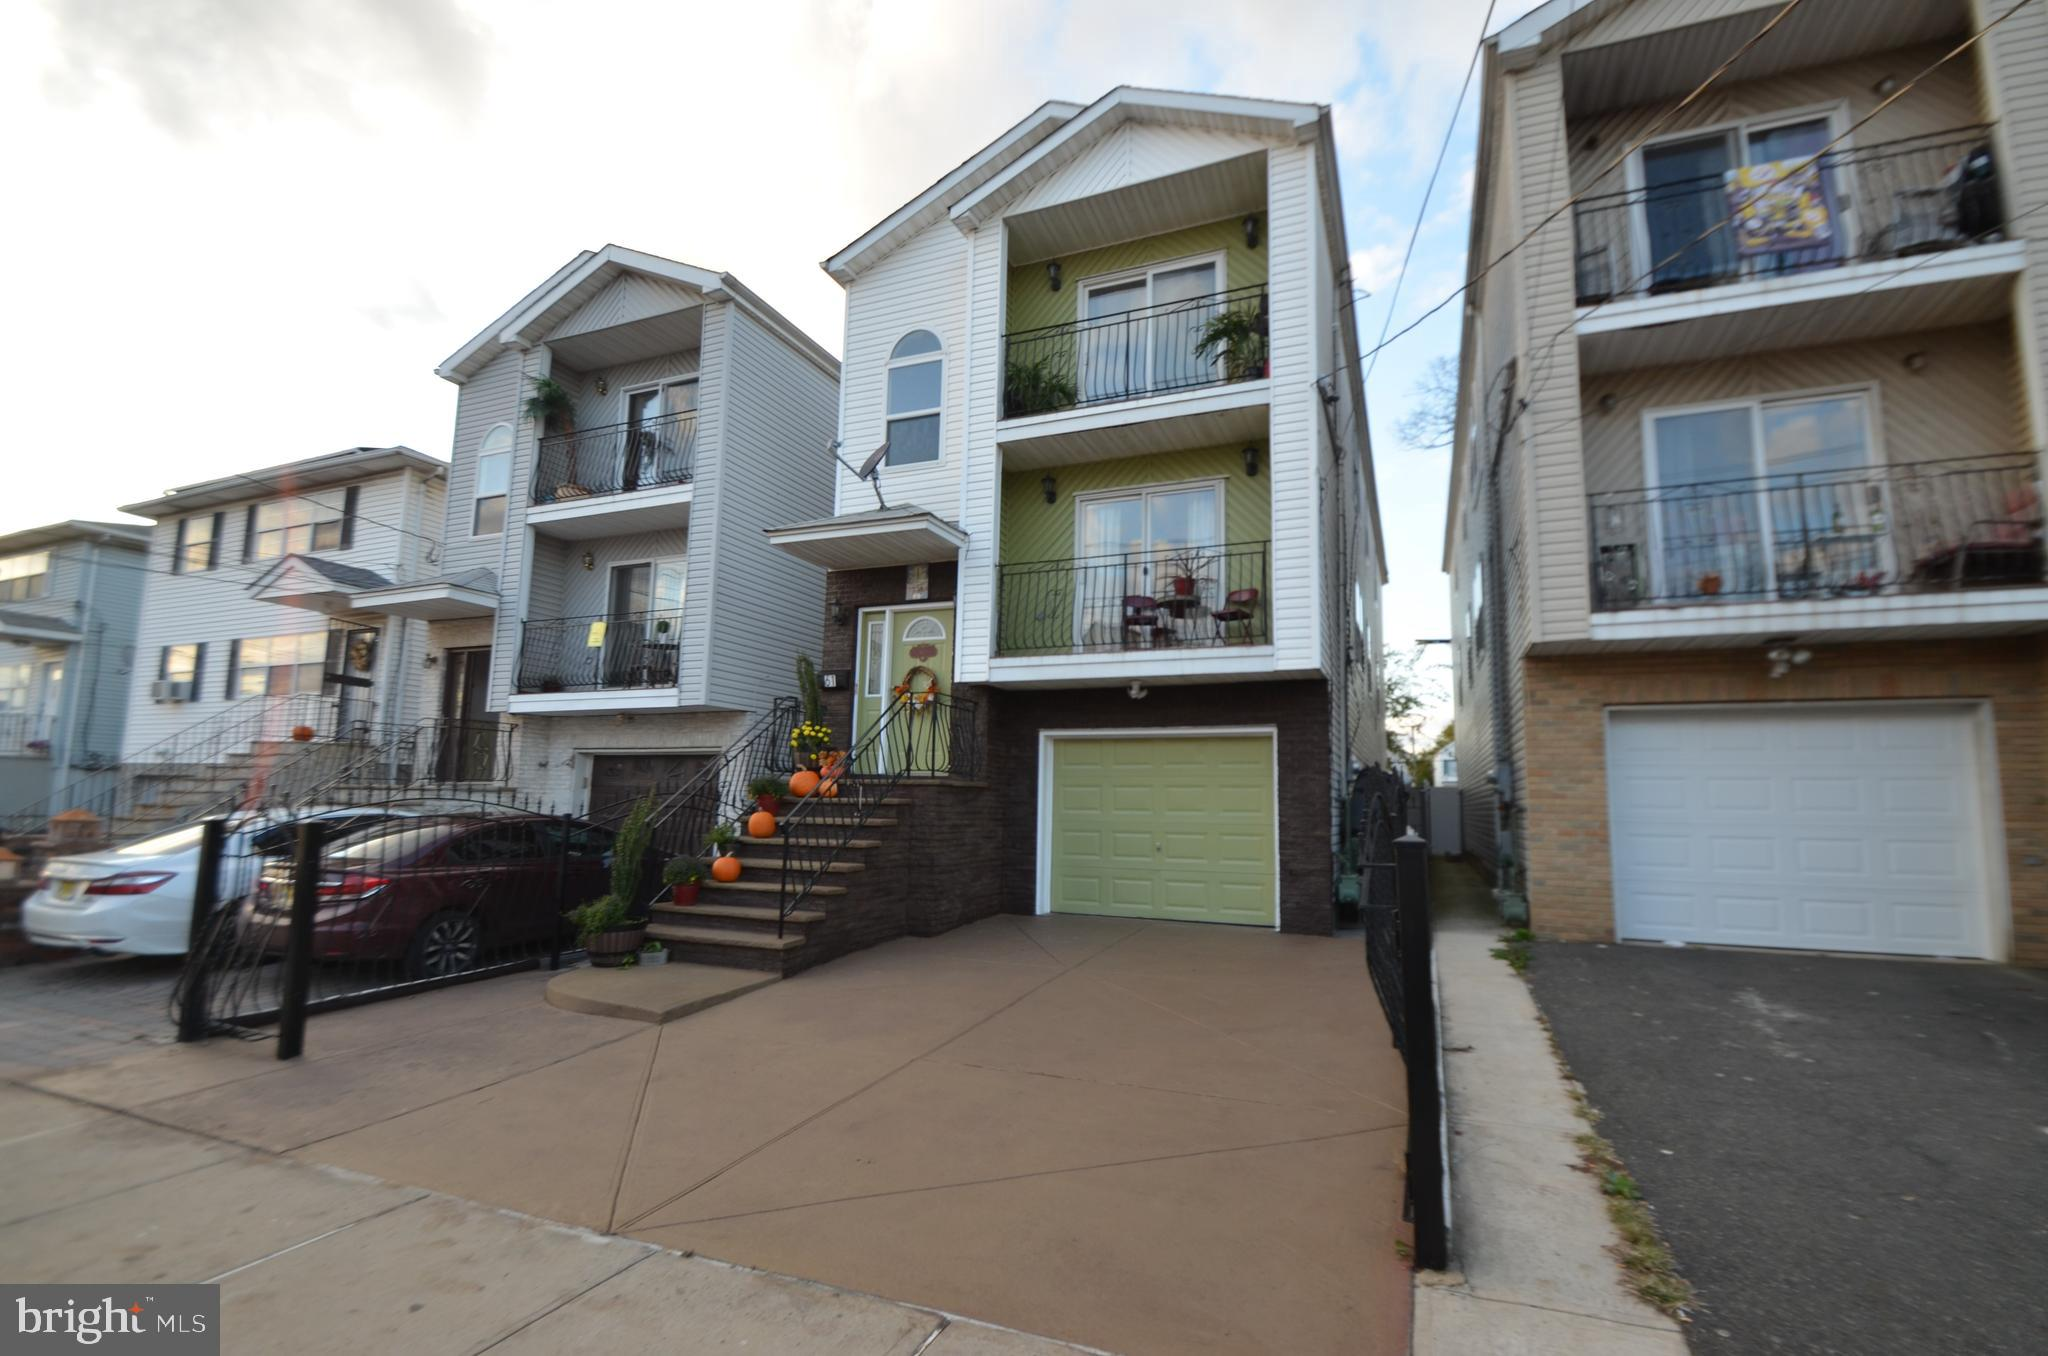 61 S 2ND STREET, ELIZABETHPORT, NJ 07206